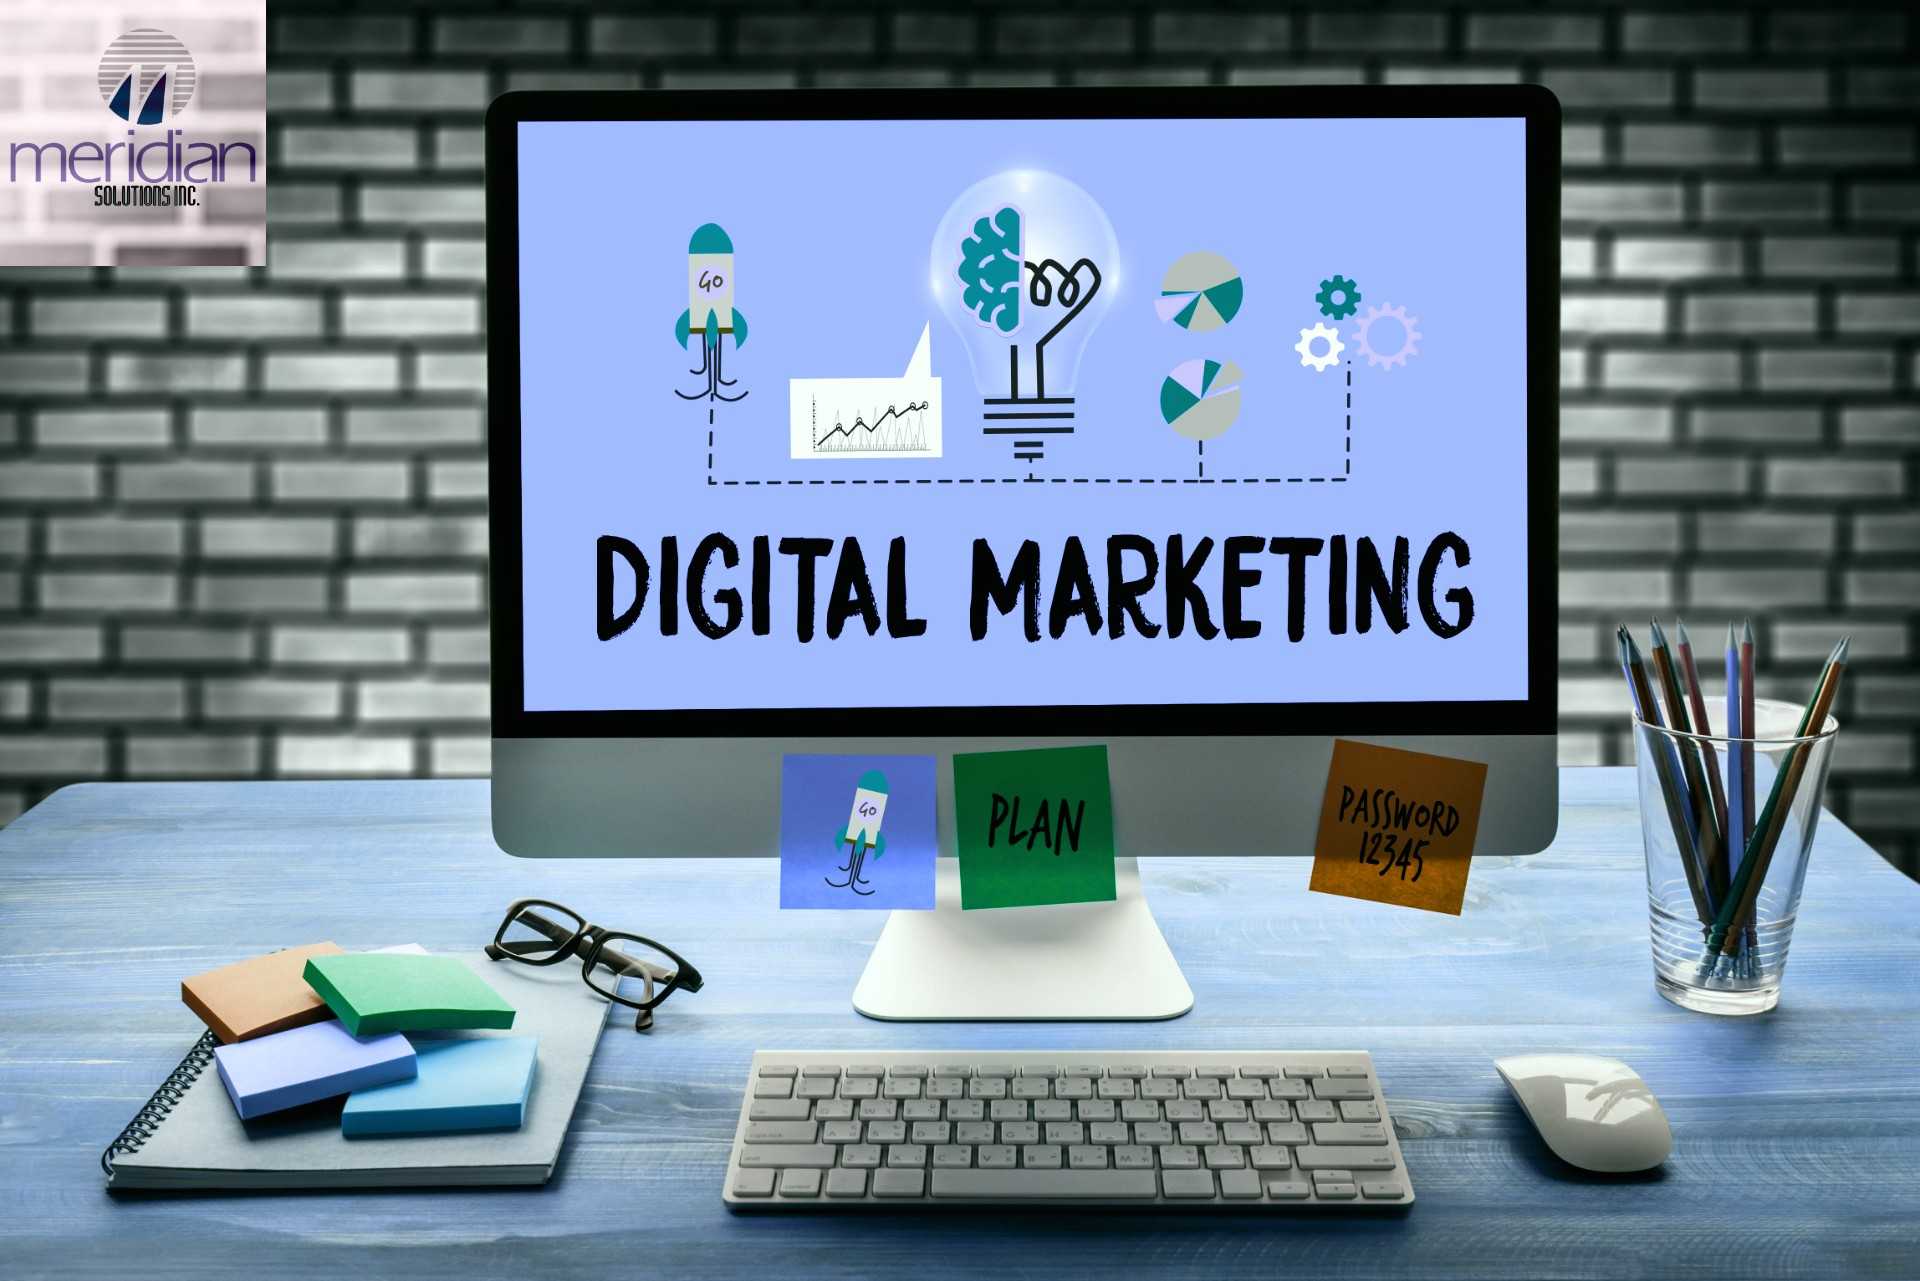 Top digital marketing companies in Dubai